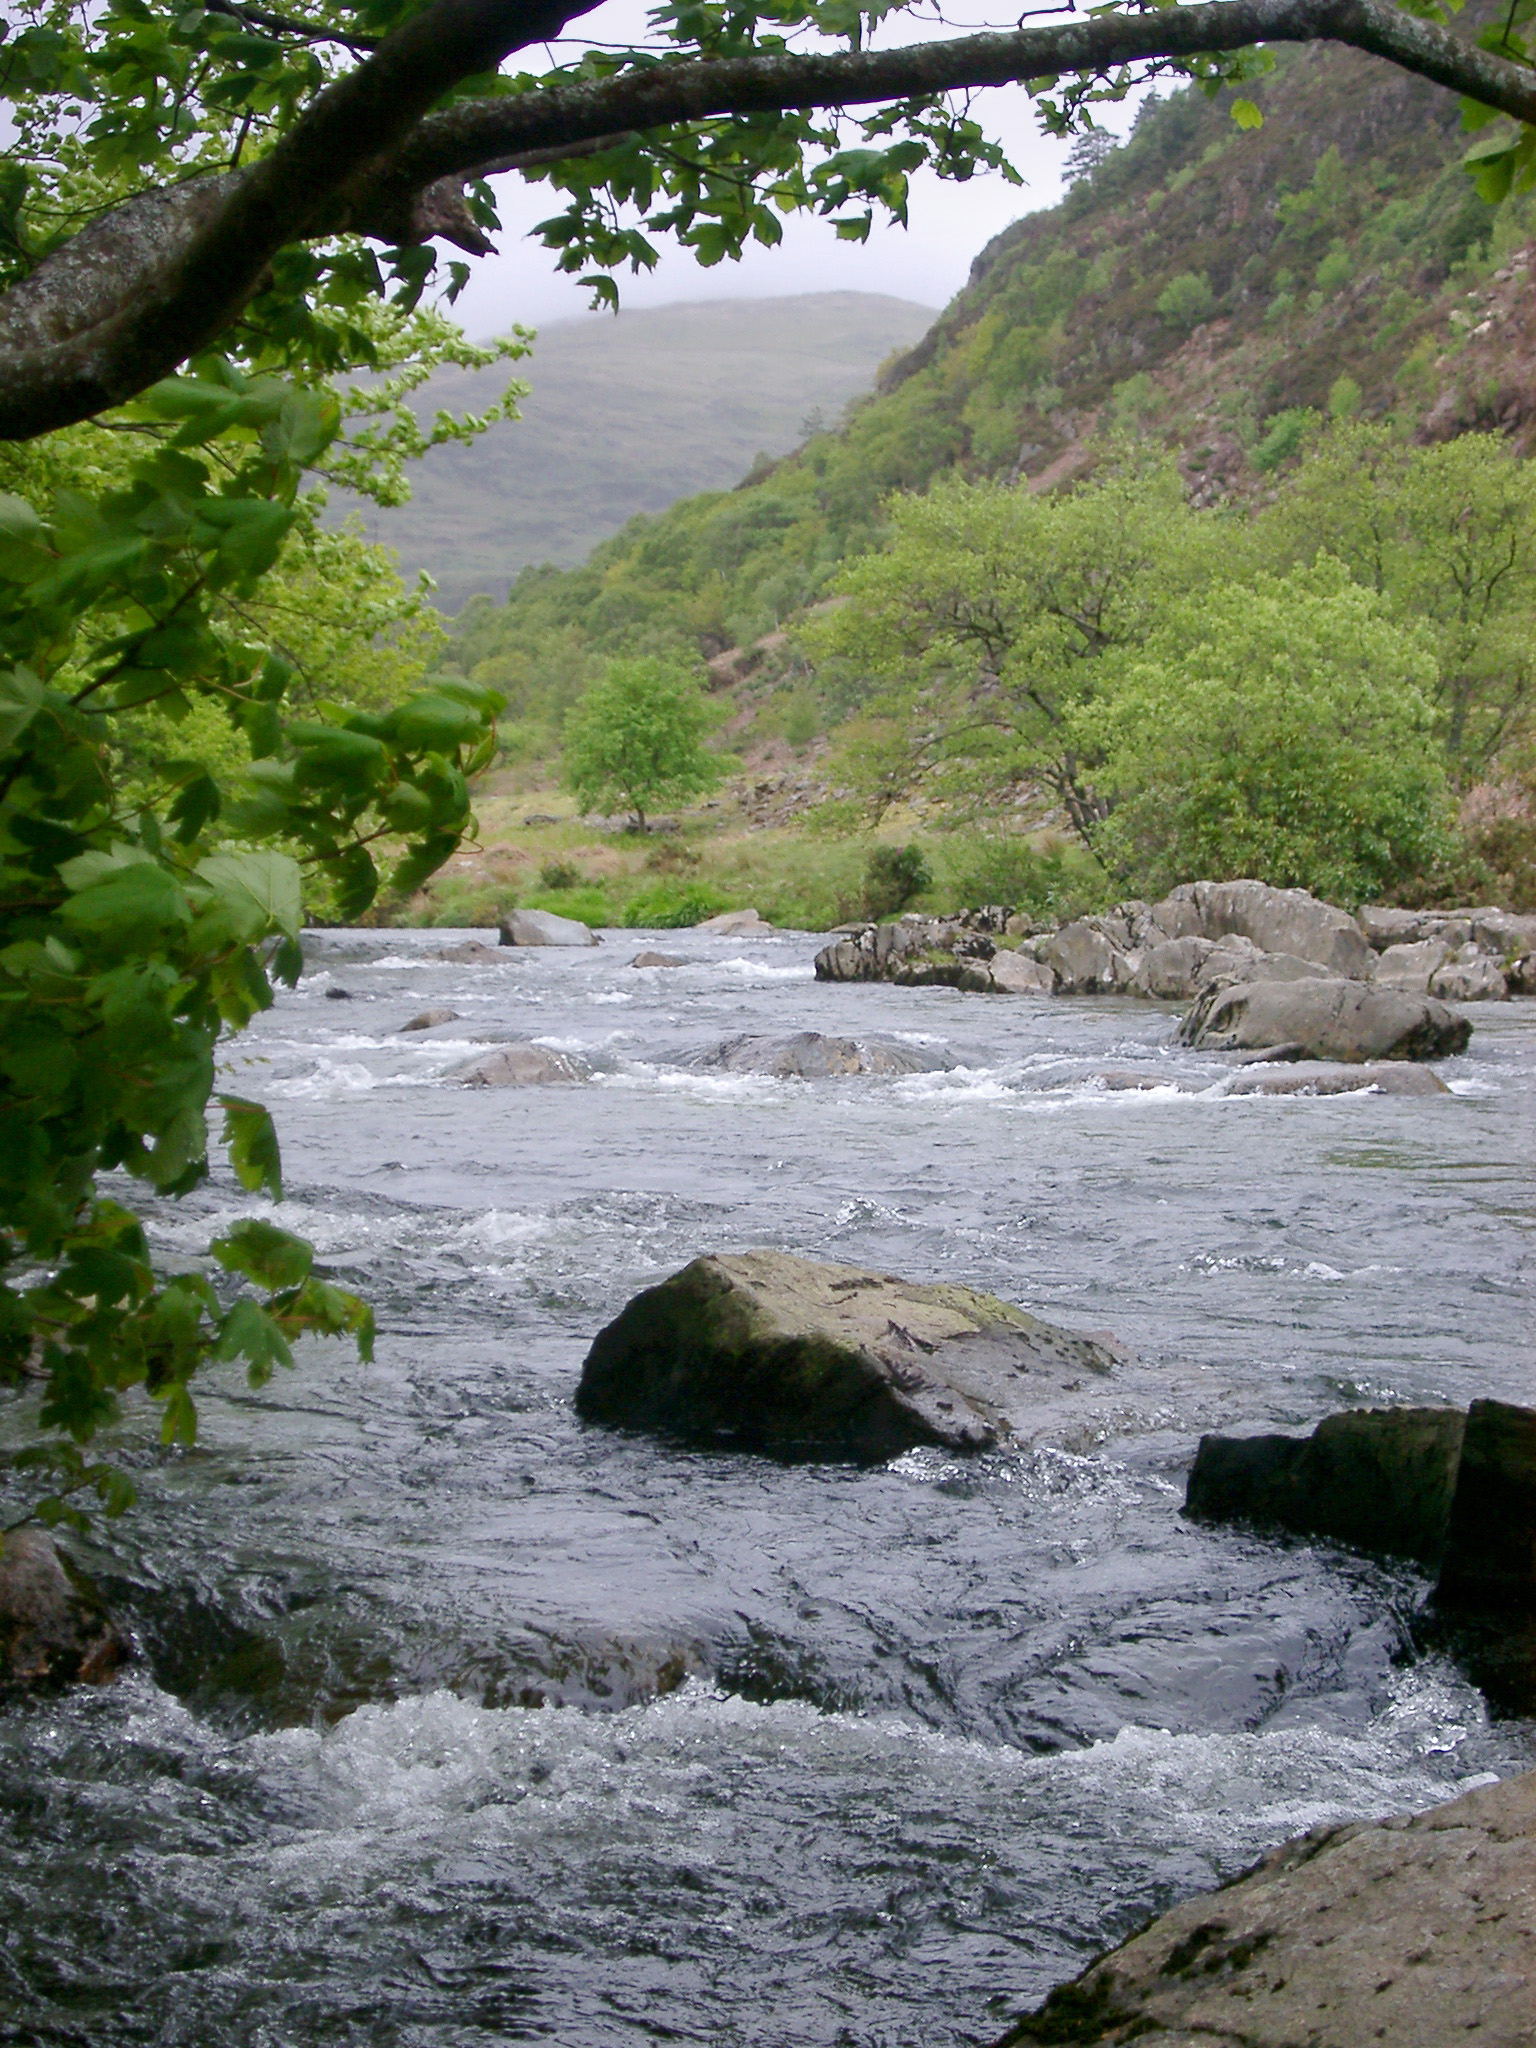 River with melt water flowing through a steep mountain valley forested with green leafy deciduous trees in Wales